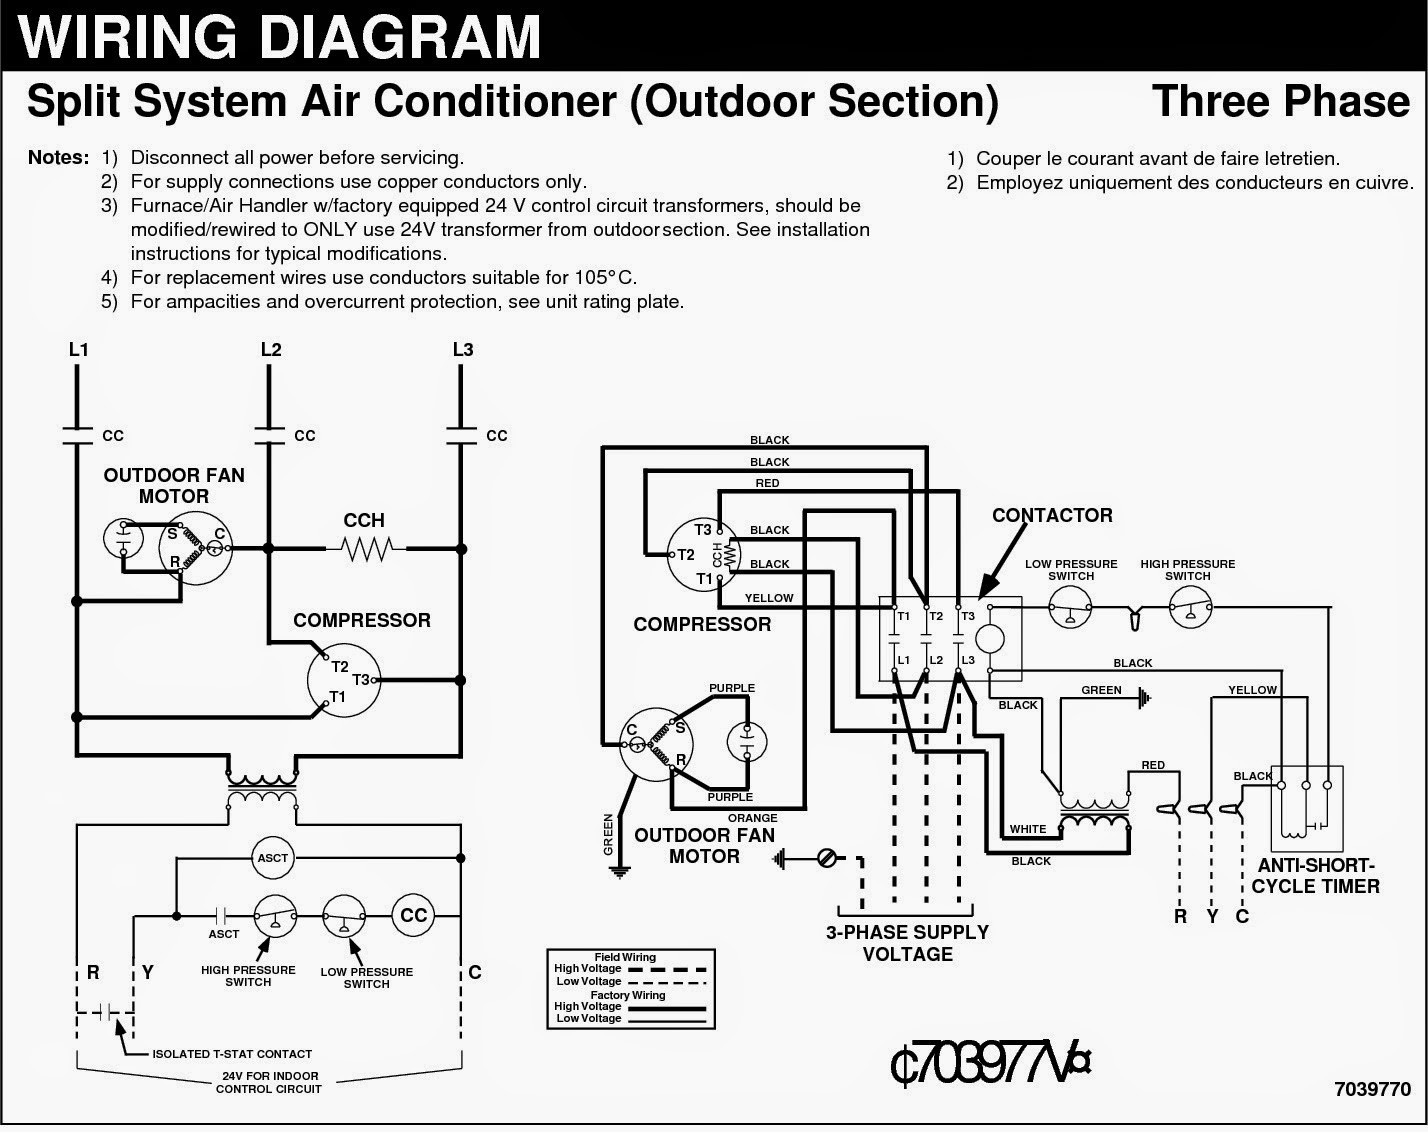 aircon motor wiring diagram wiring diagrams the